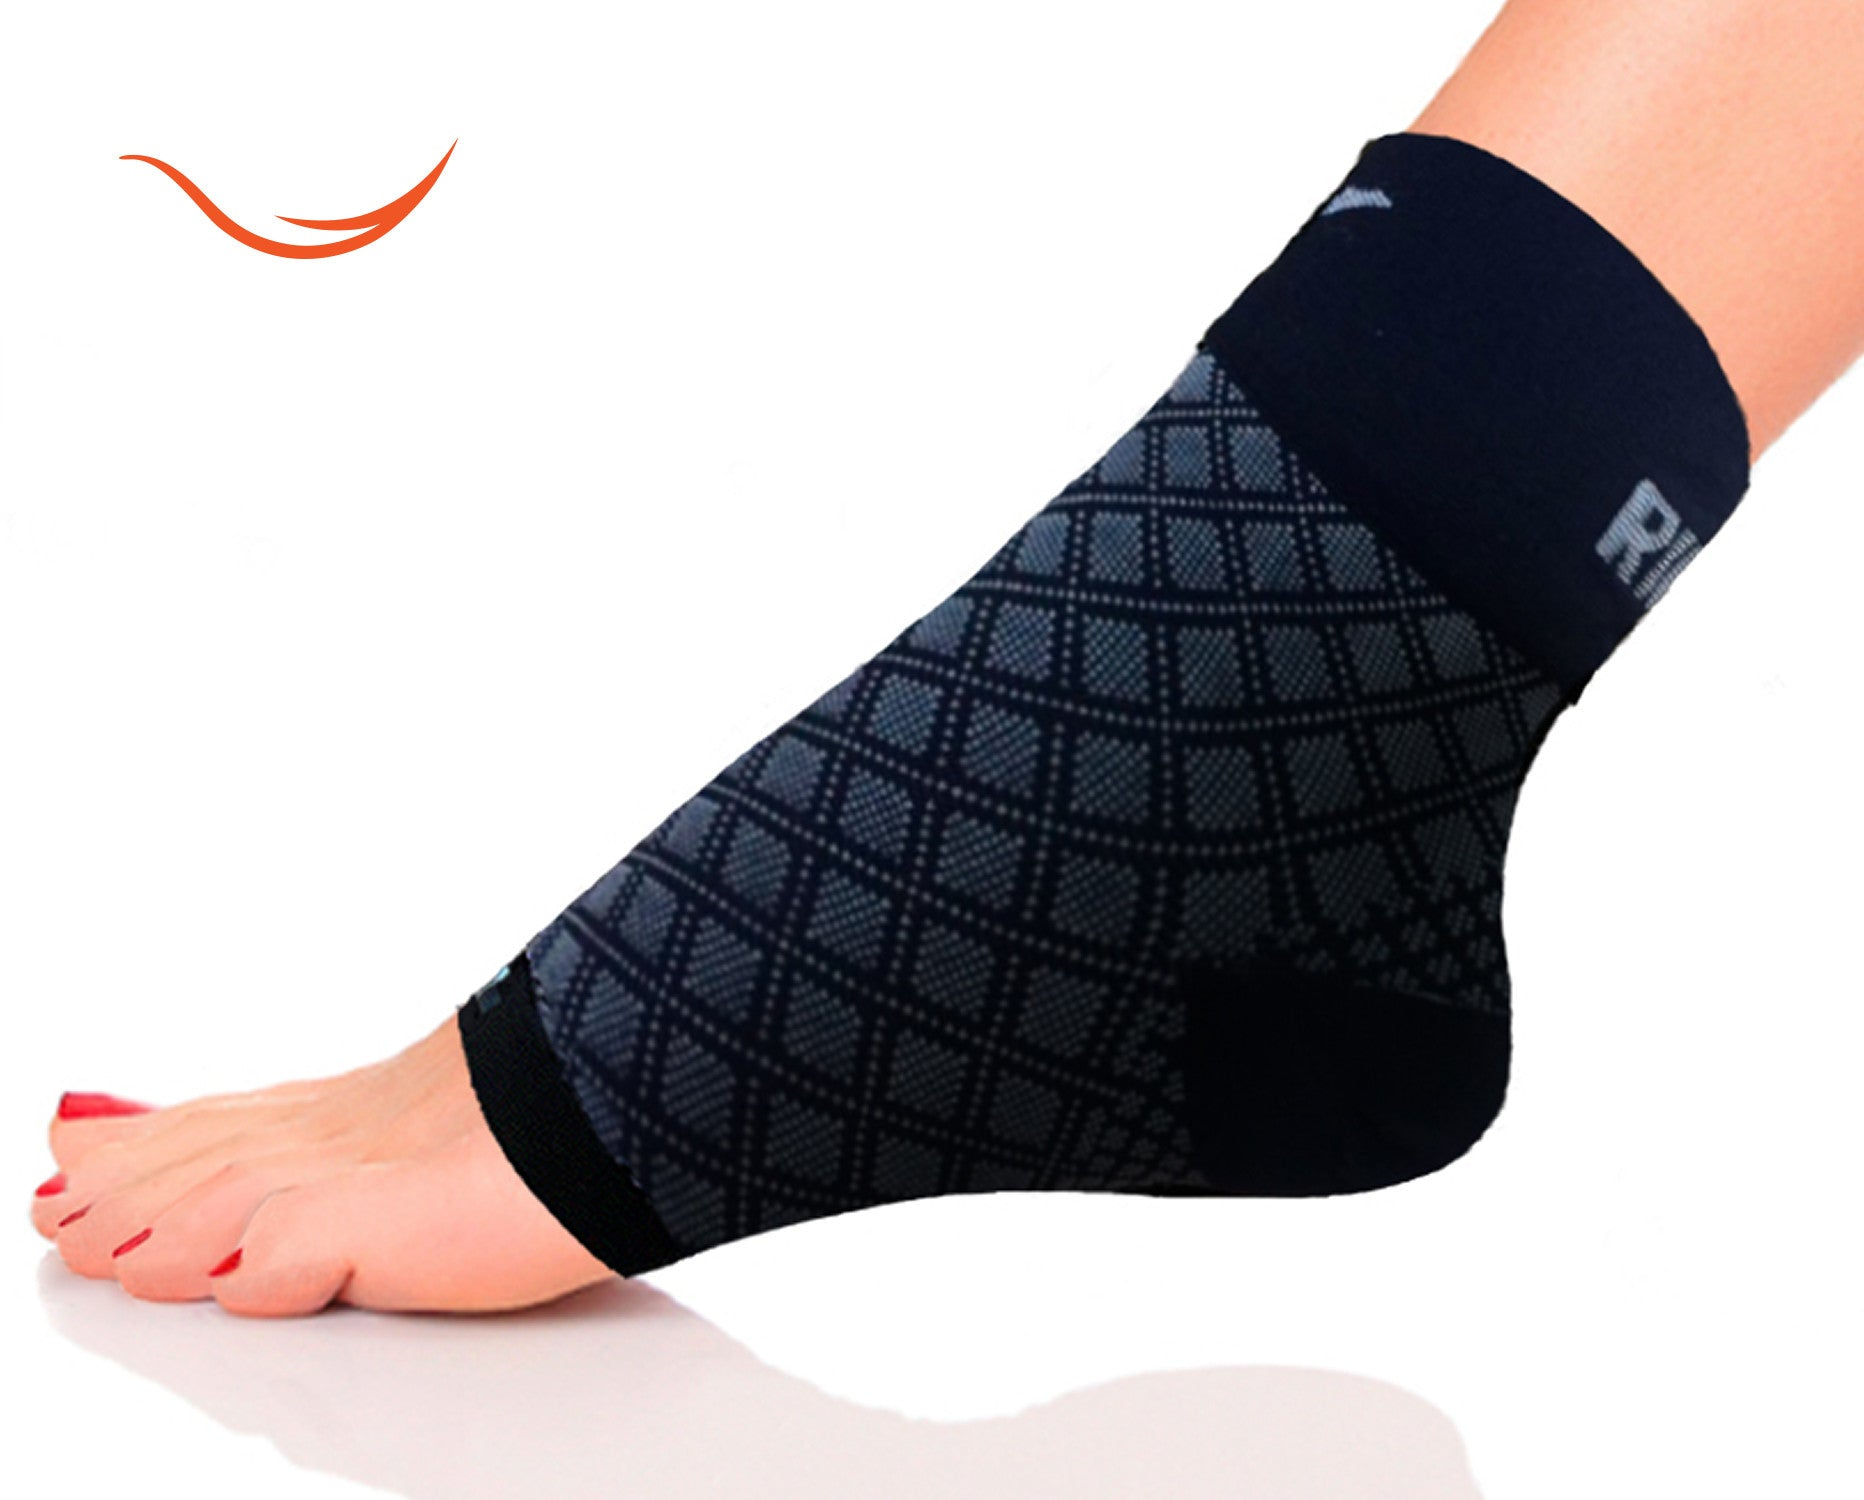 Plantar Fasciitis Foot Sleeves Graduated Compression Ankle Sleeves for Men Women foot pain solution